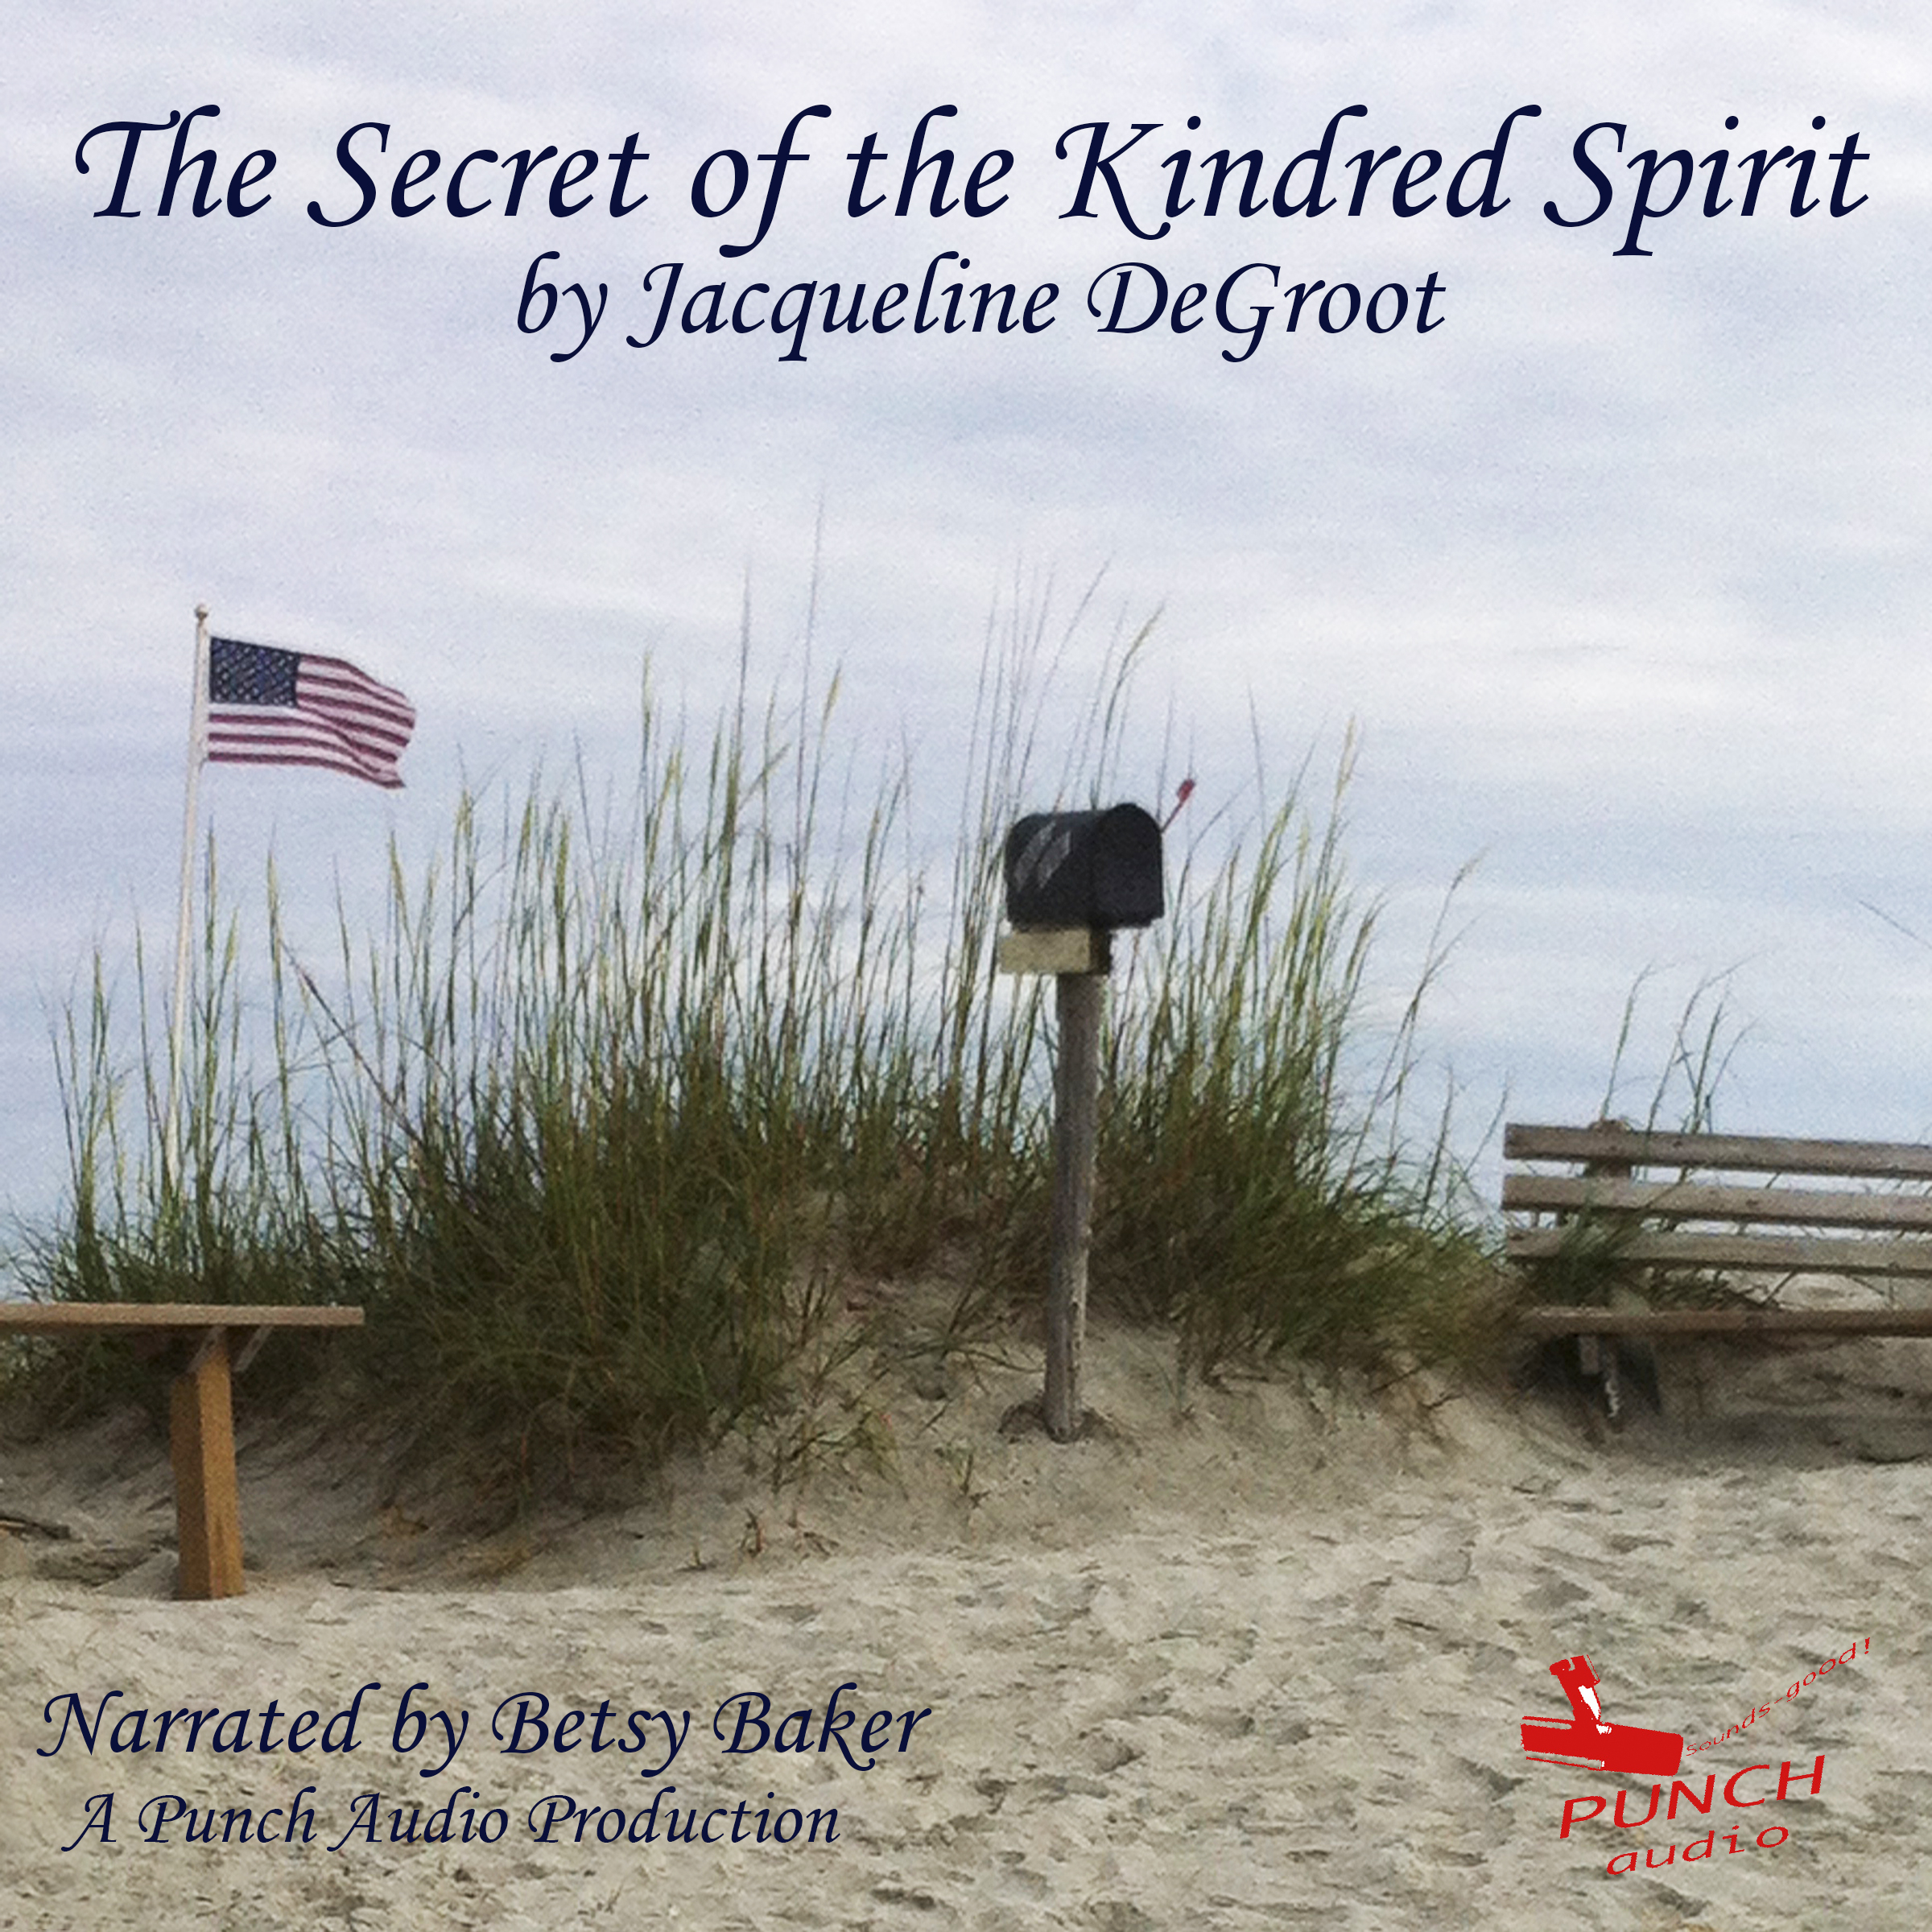 The Secret of the Kindred Spirit available on Audio Book